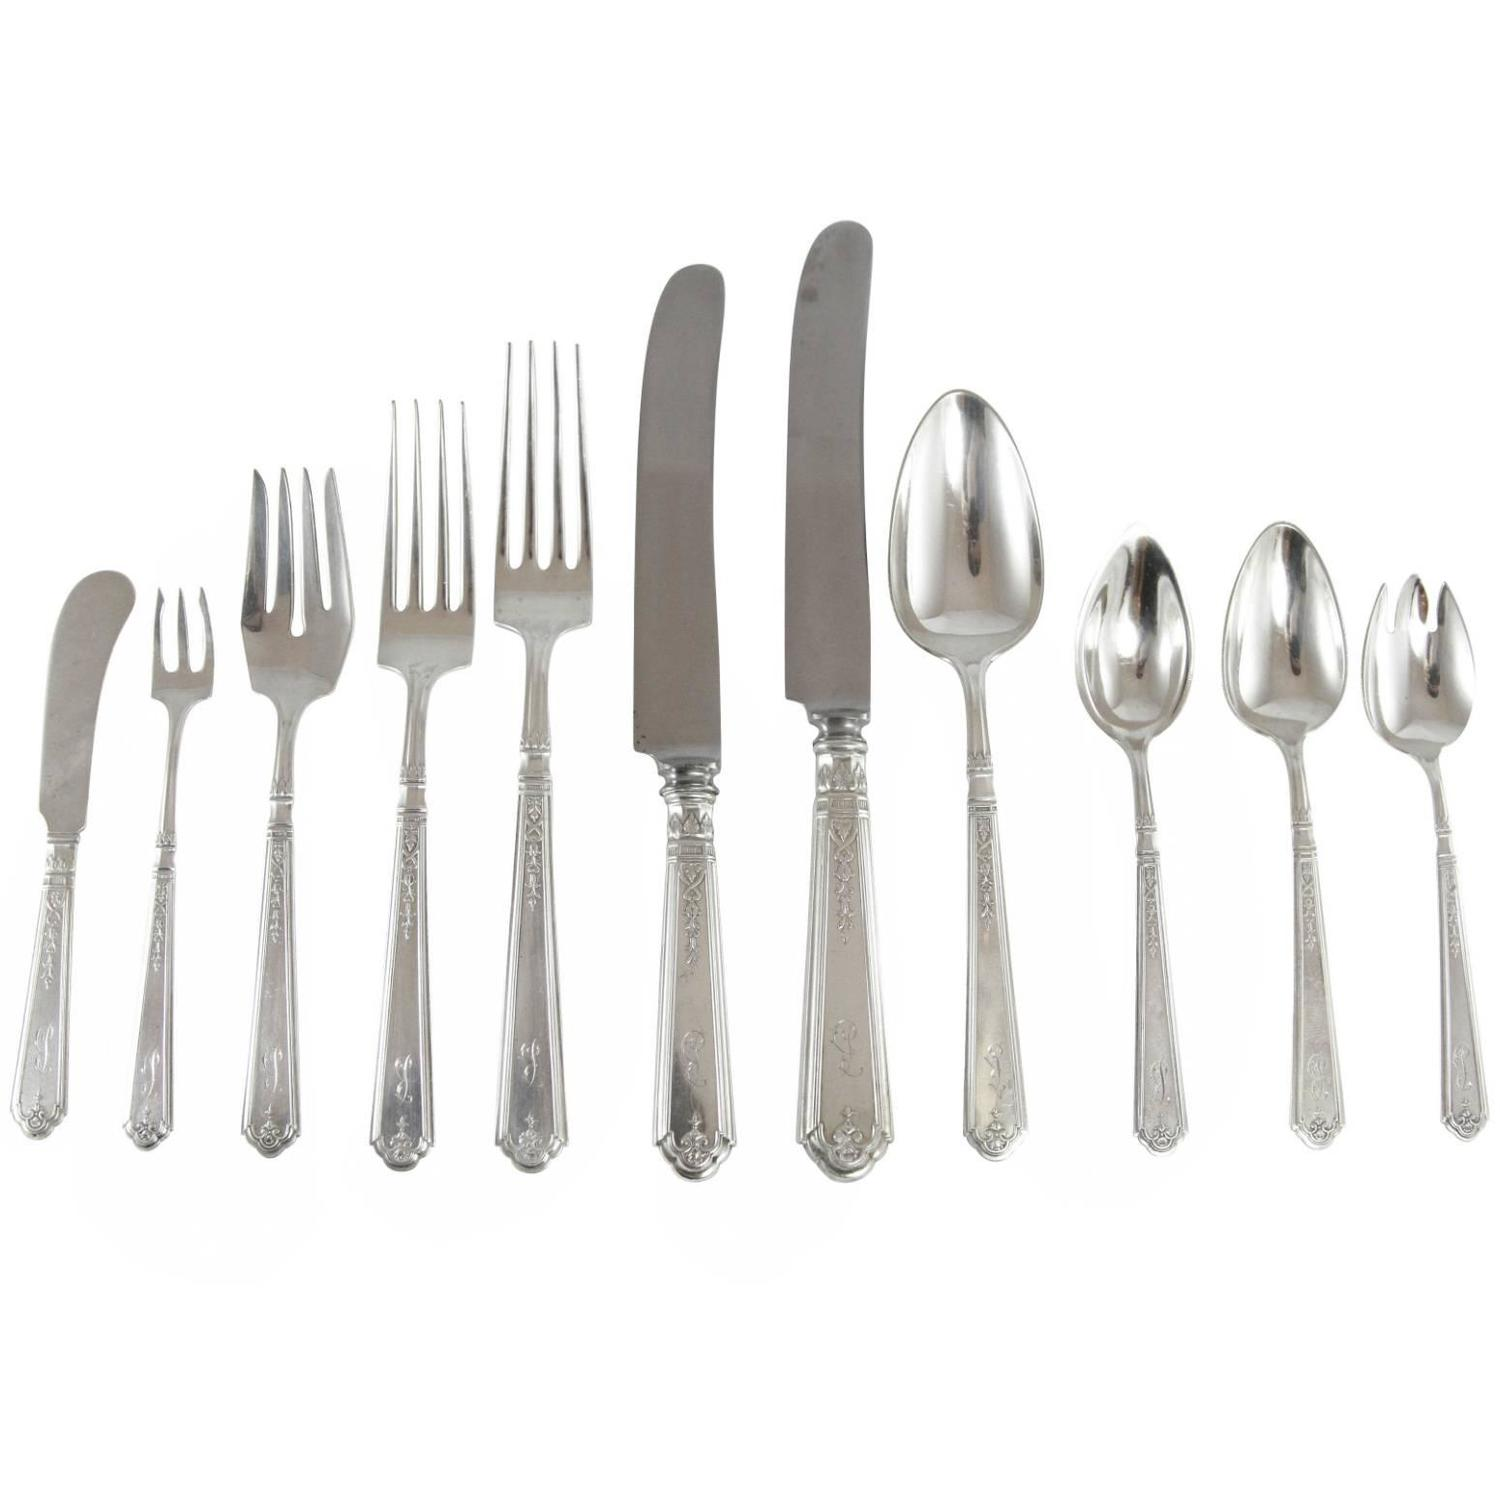 20th Century u0027Princess Patriciau0027 Sterling Silver Flatware Set by Gorham For Sale at 1stdibs  sc 1 st  1stDibs & 20th Century u0027Princess Patriciau0027 Sterling Silver Flatware Set by ...